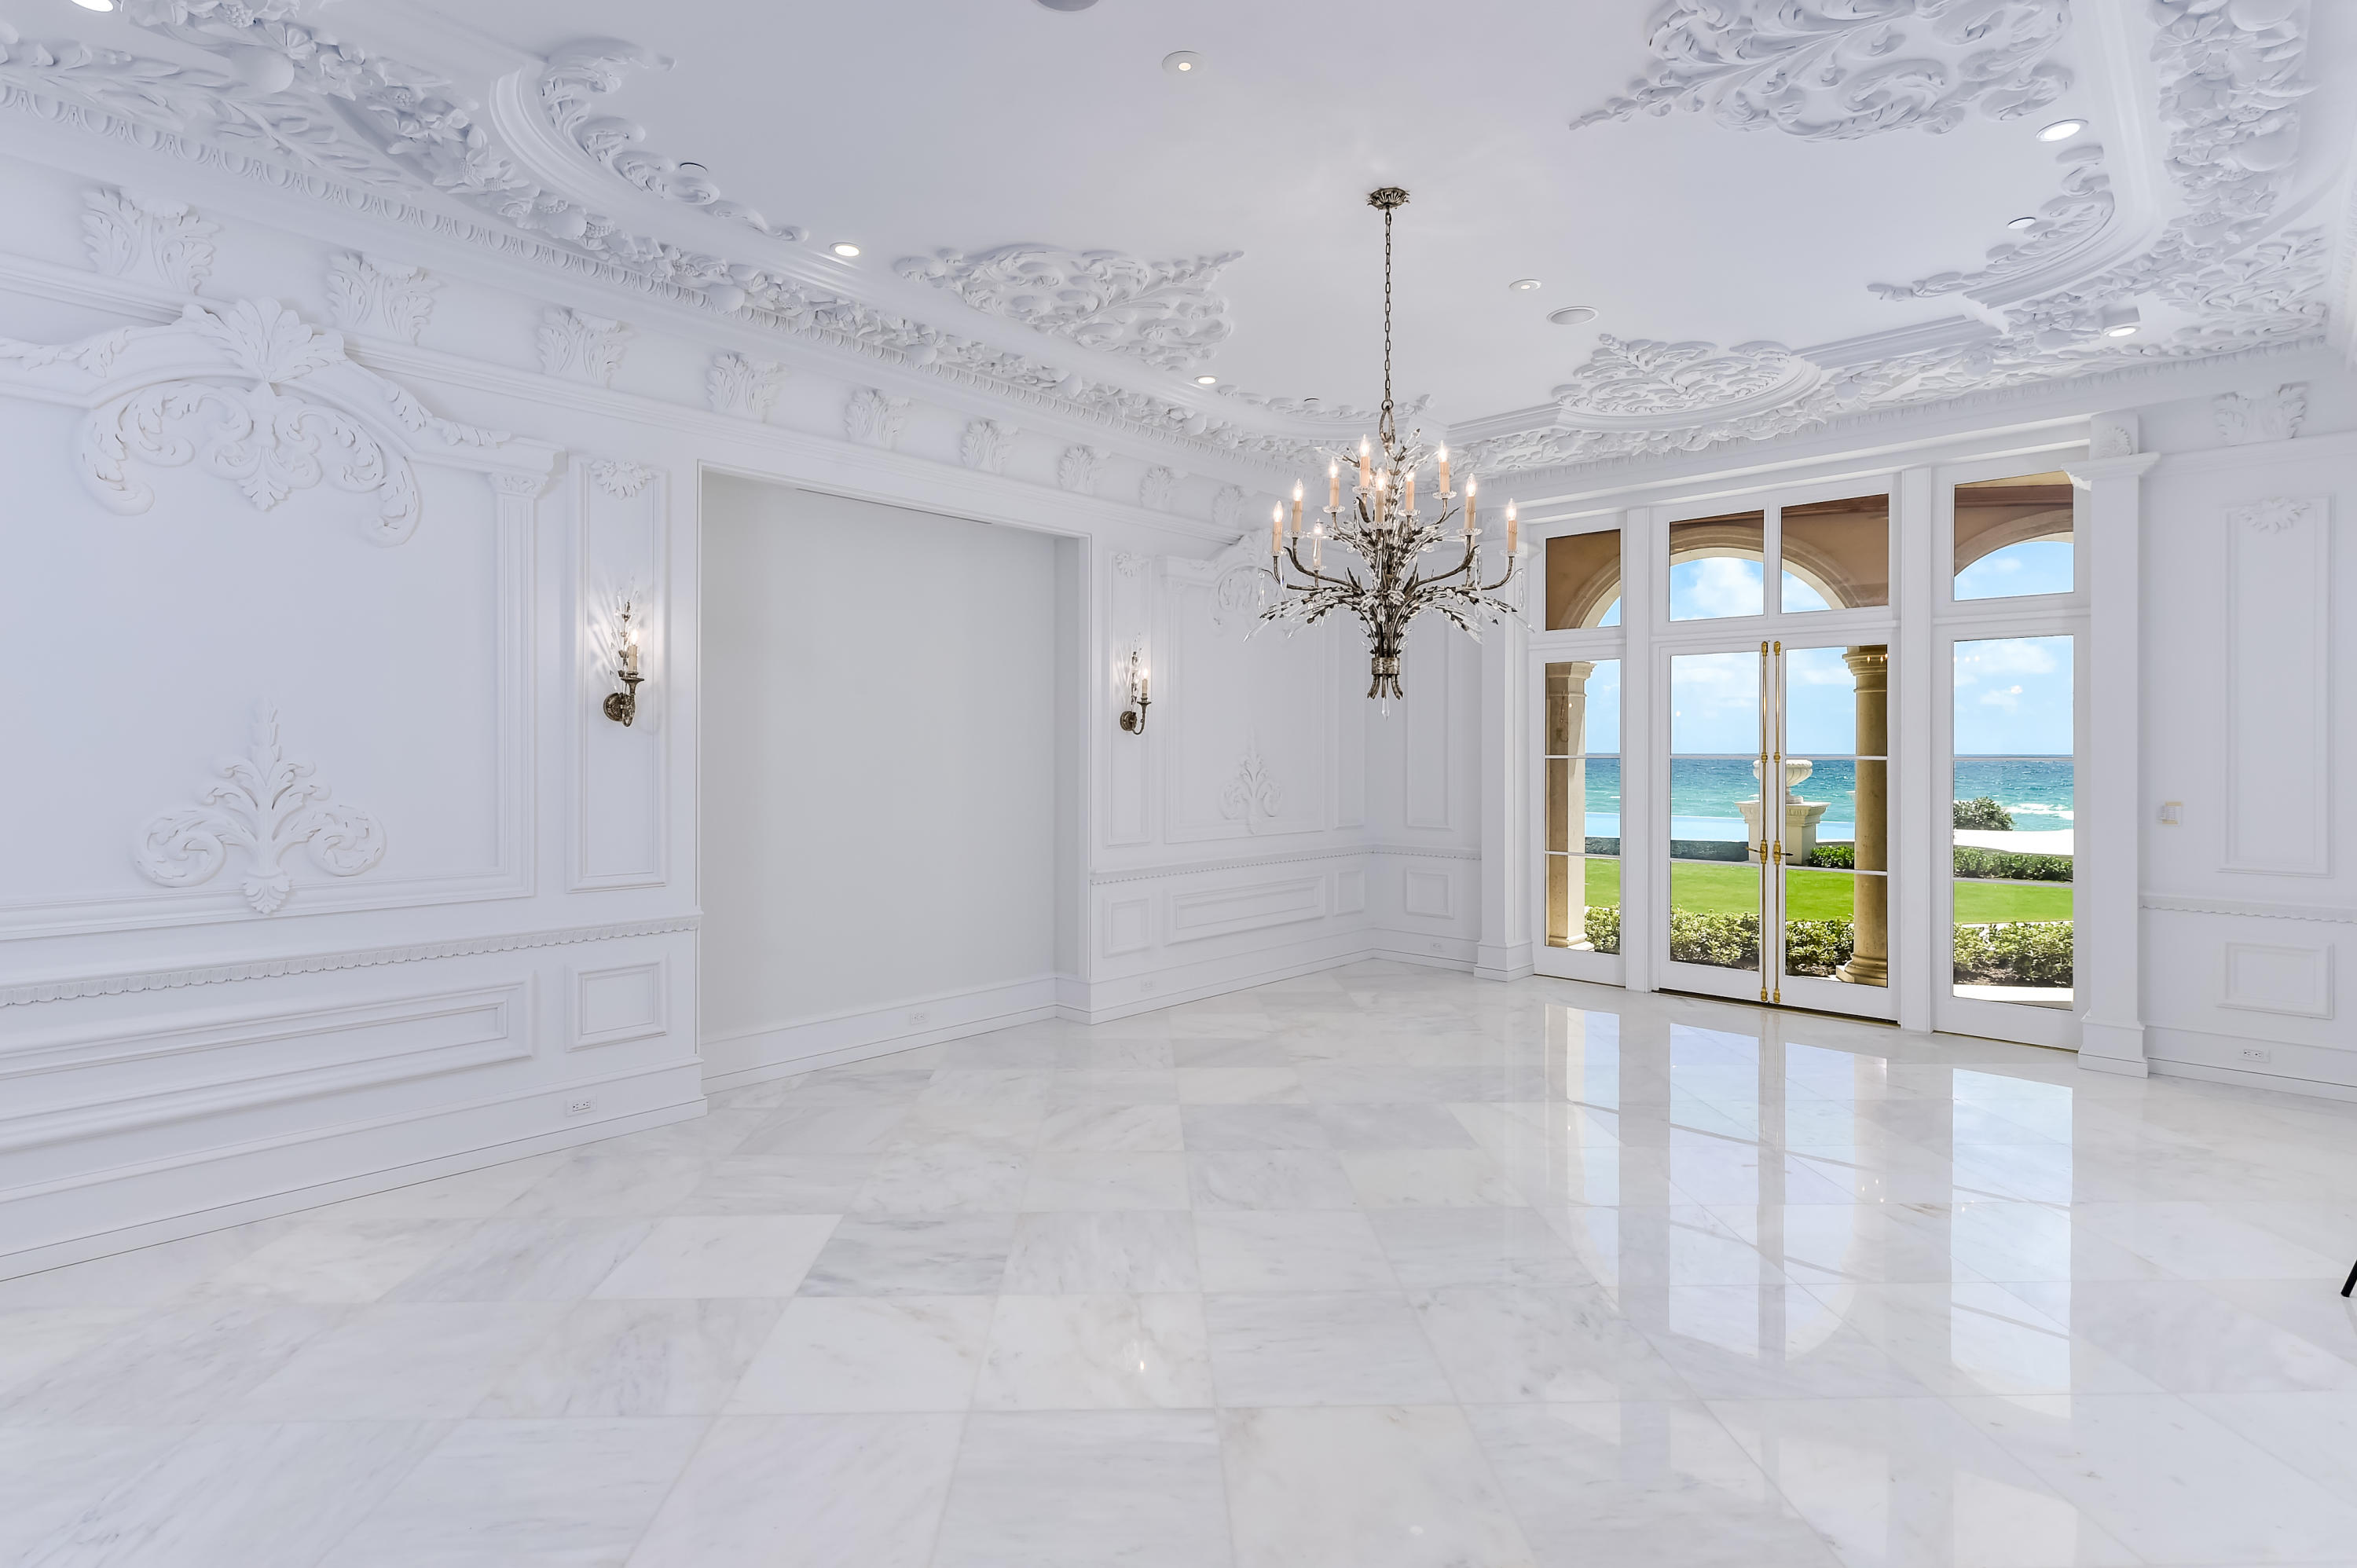 1071 Ocean Boulevard, Palm Beach, Florida 33480, 7 Bedrooms Bedrooms, ,7.9 BathroomsBathrooms,Single Family,For Sale,Ocean,RX-10509115